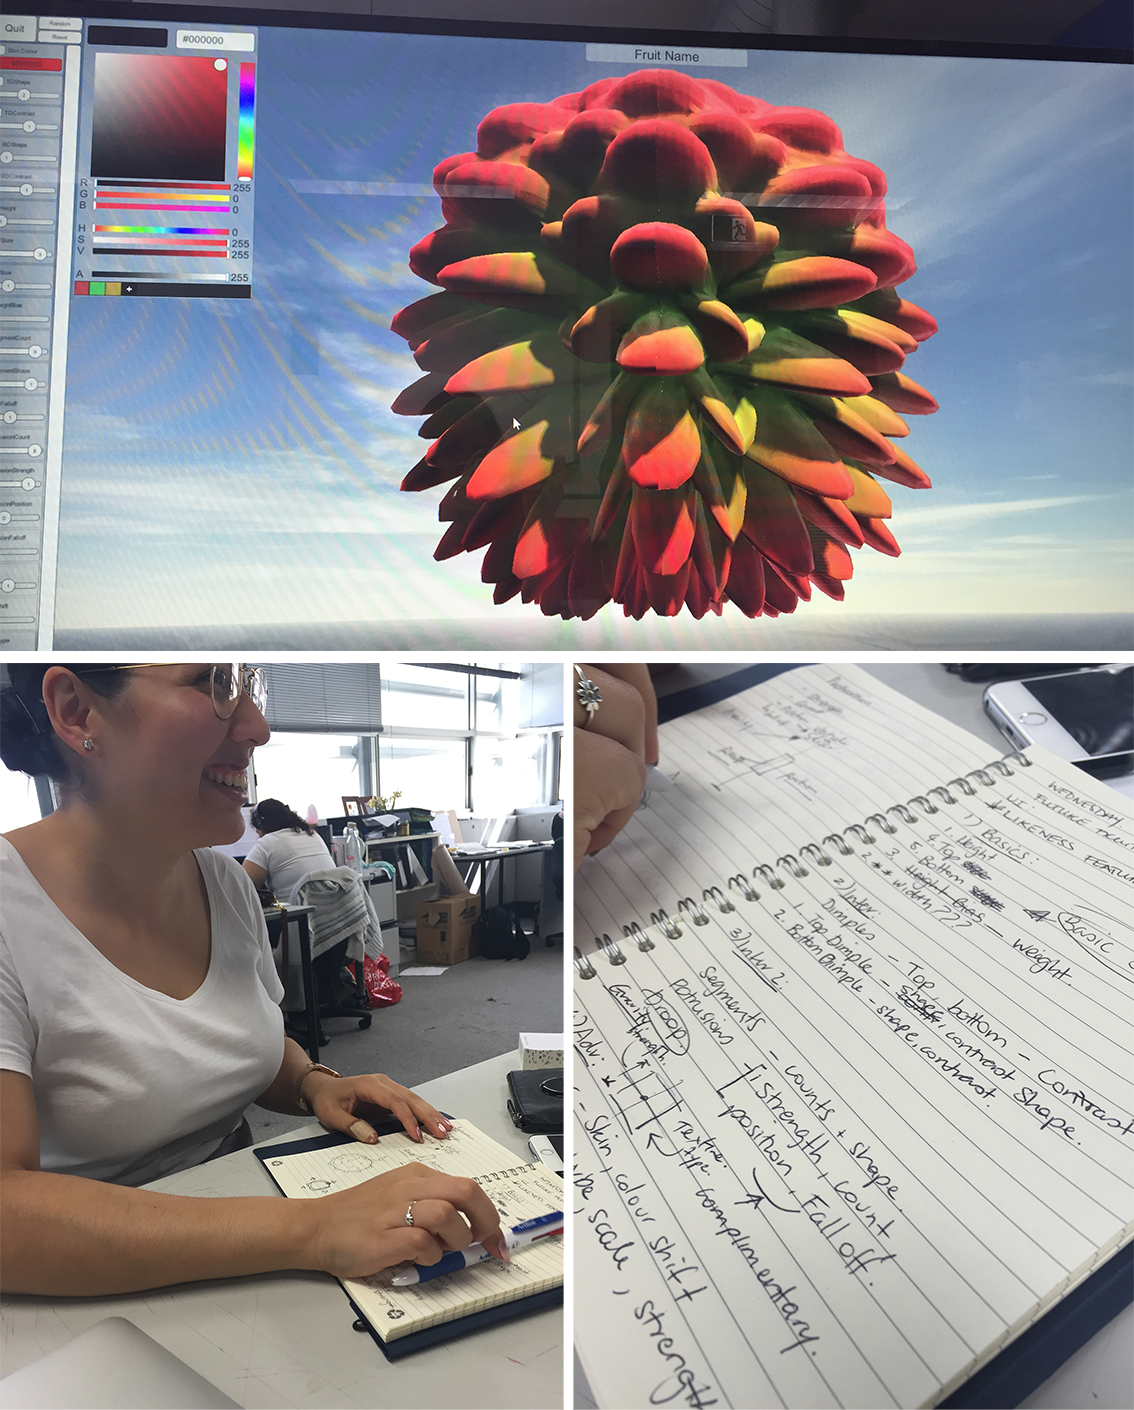 UI review for Future Fruit with Sarah writing notes